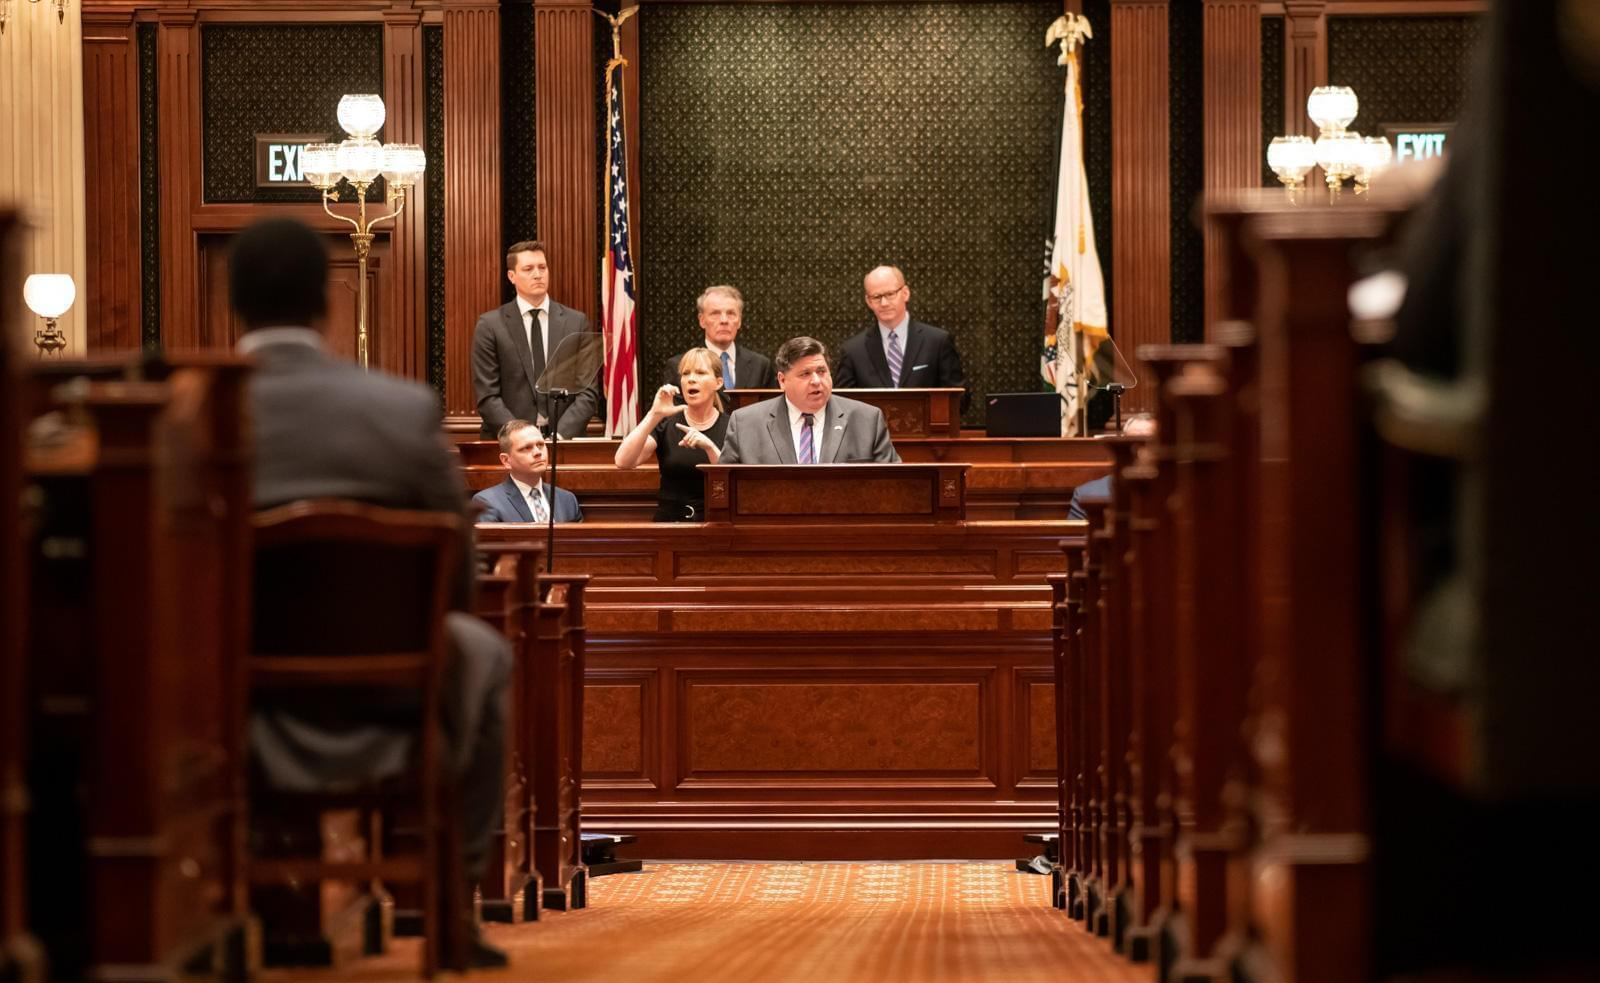 Gov. J.B. Pritzker delivers his State of the State address to the General Assembly in this photo provided by the state of Illinois.